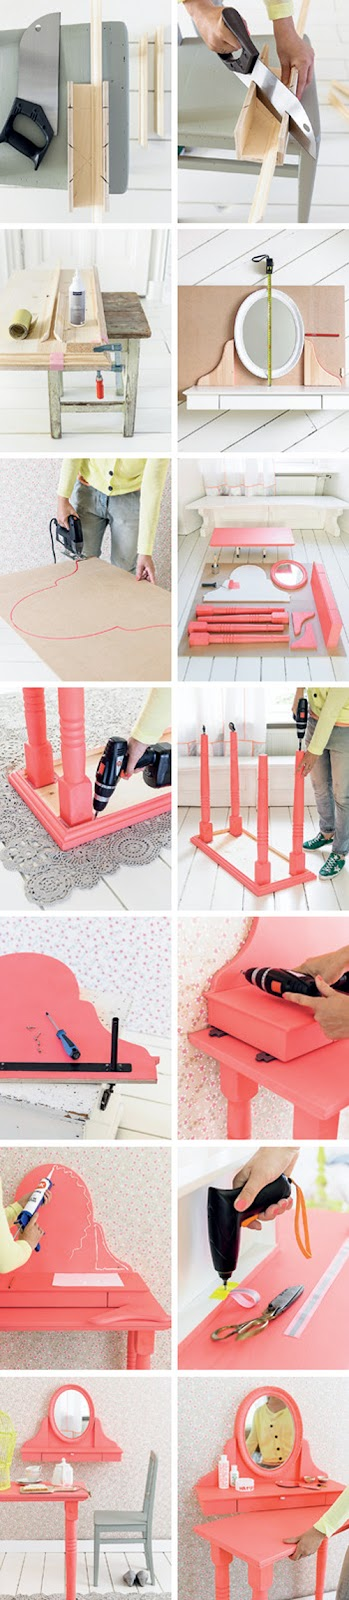 Dressing+Table+on+Wheels+DIY+From+101+Woonideeen+Magazine Dressing Table on Wheels DIY From 101 Woonideeen Magazine